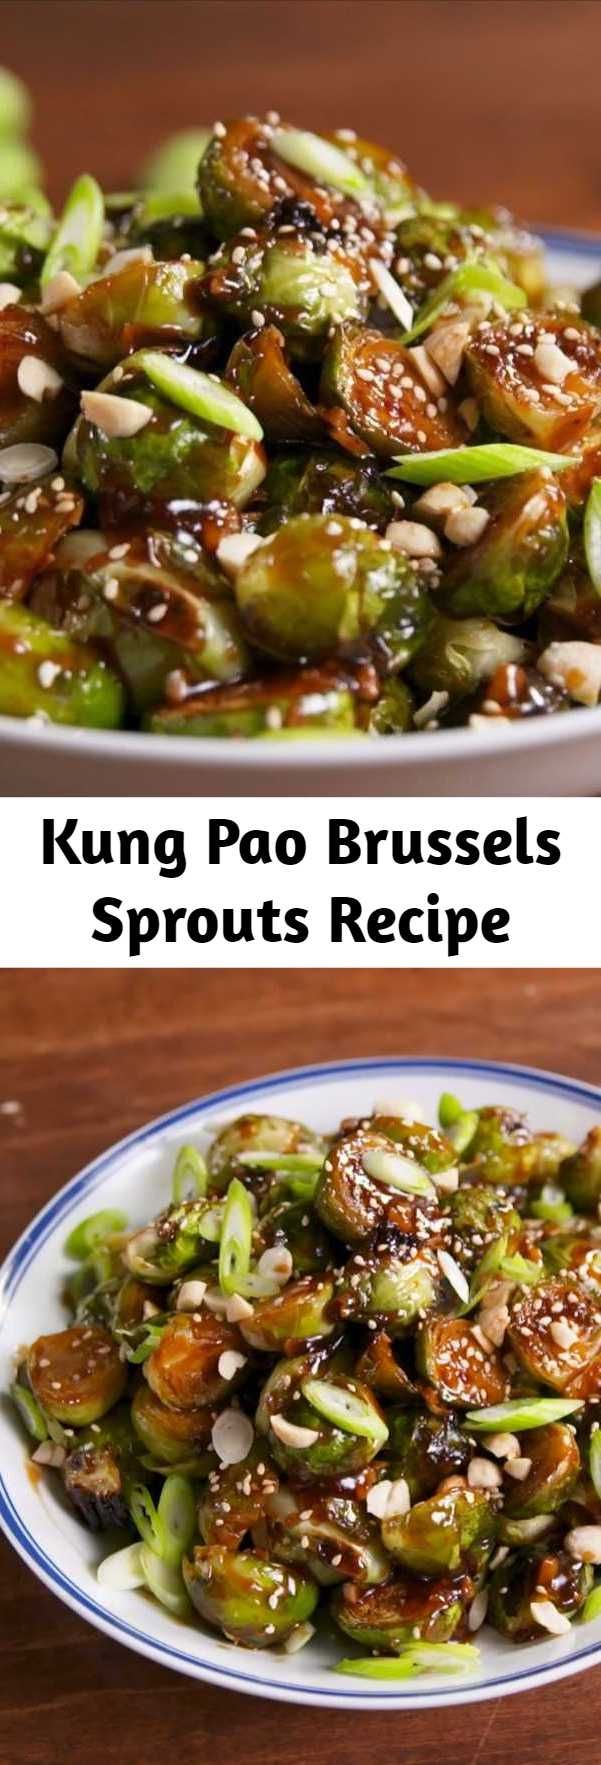 Kung Pao Brussels Sprouts Recipe - The kung pao sauce on these will turn everyone into a lover of Brussels sprouts. Salty, spicy, and addicting. #food #easyrecipe #healthyeating #cleaneating #vegetarian